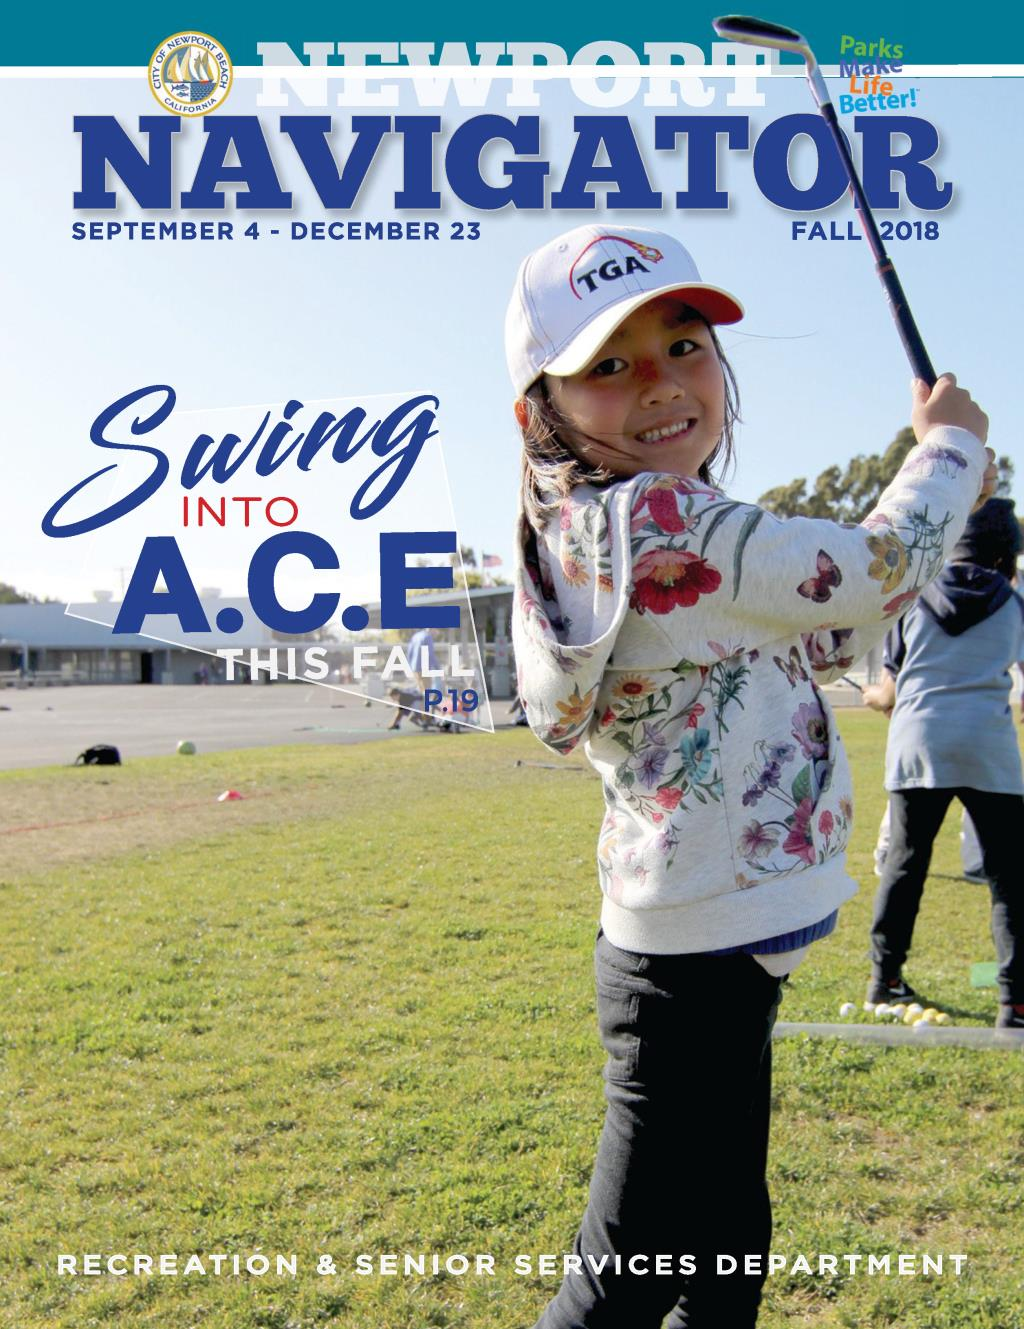 Newport Navigator, Parks Make Lie Better, Fall 2018, September 4 - December 23, Swing into A.C.E. this fall. p19, Recreation & Senior Services, Classes, programs, activities